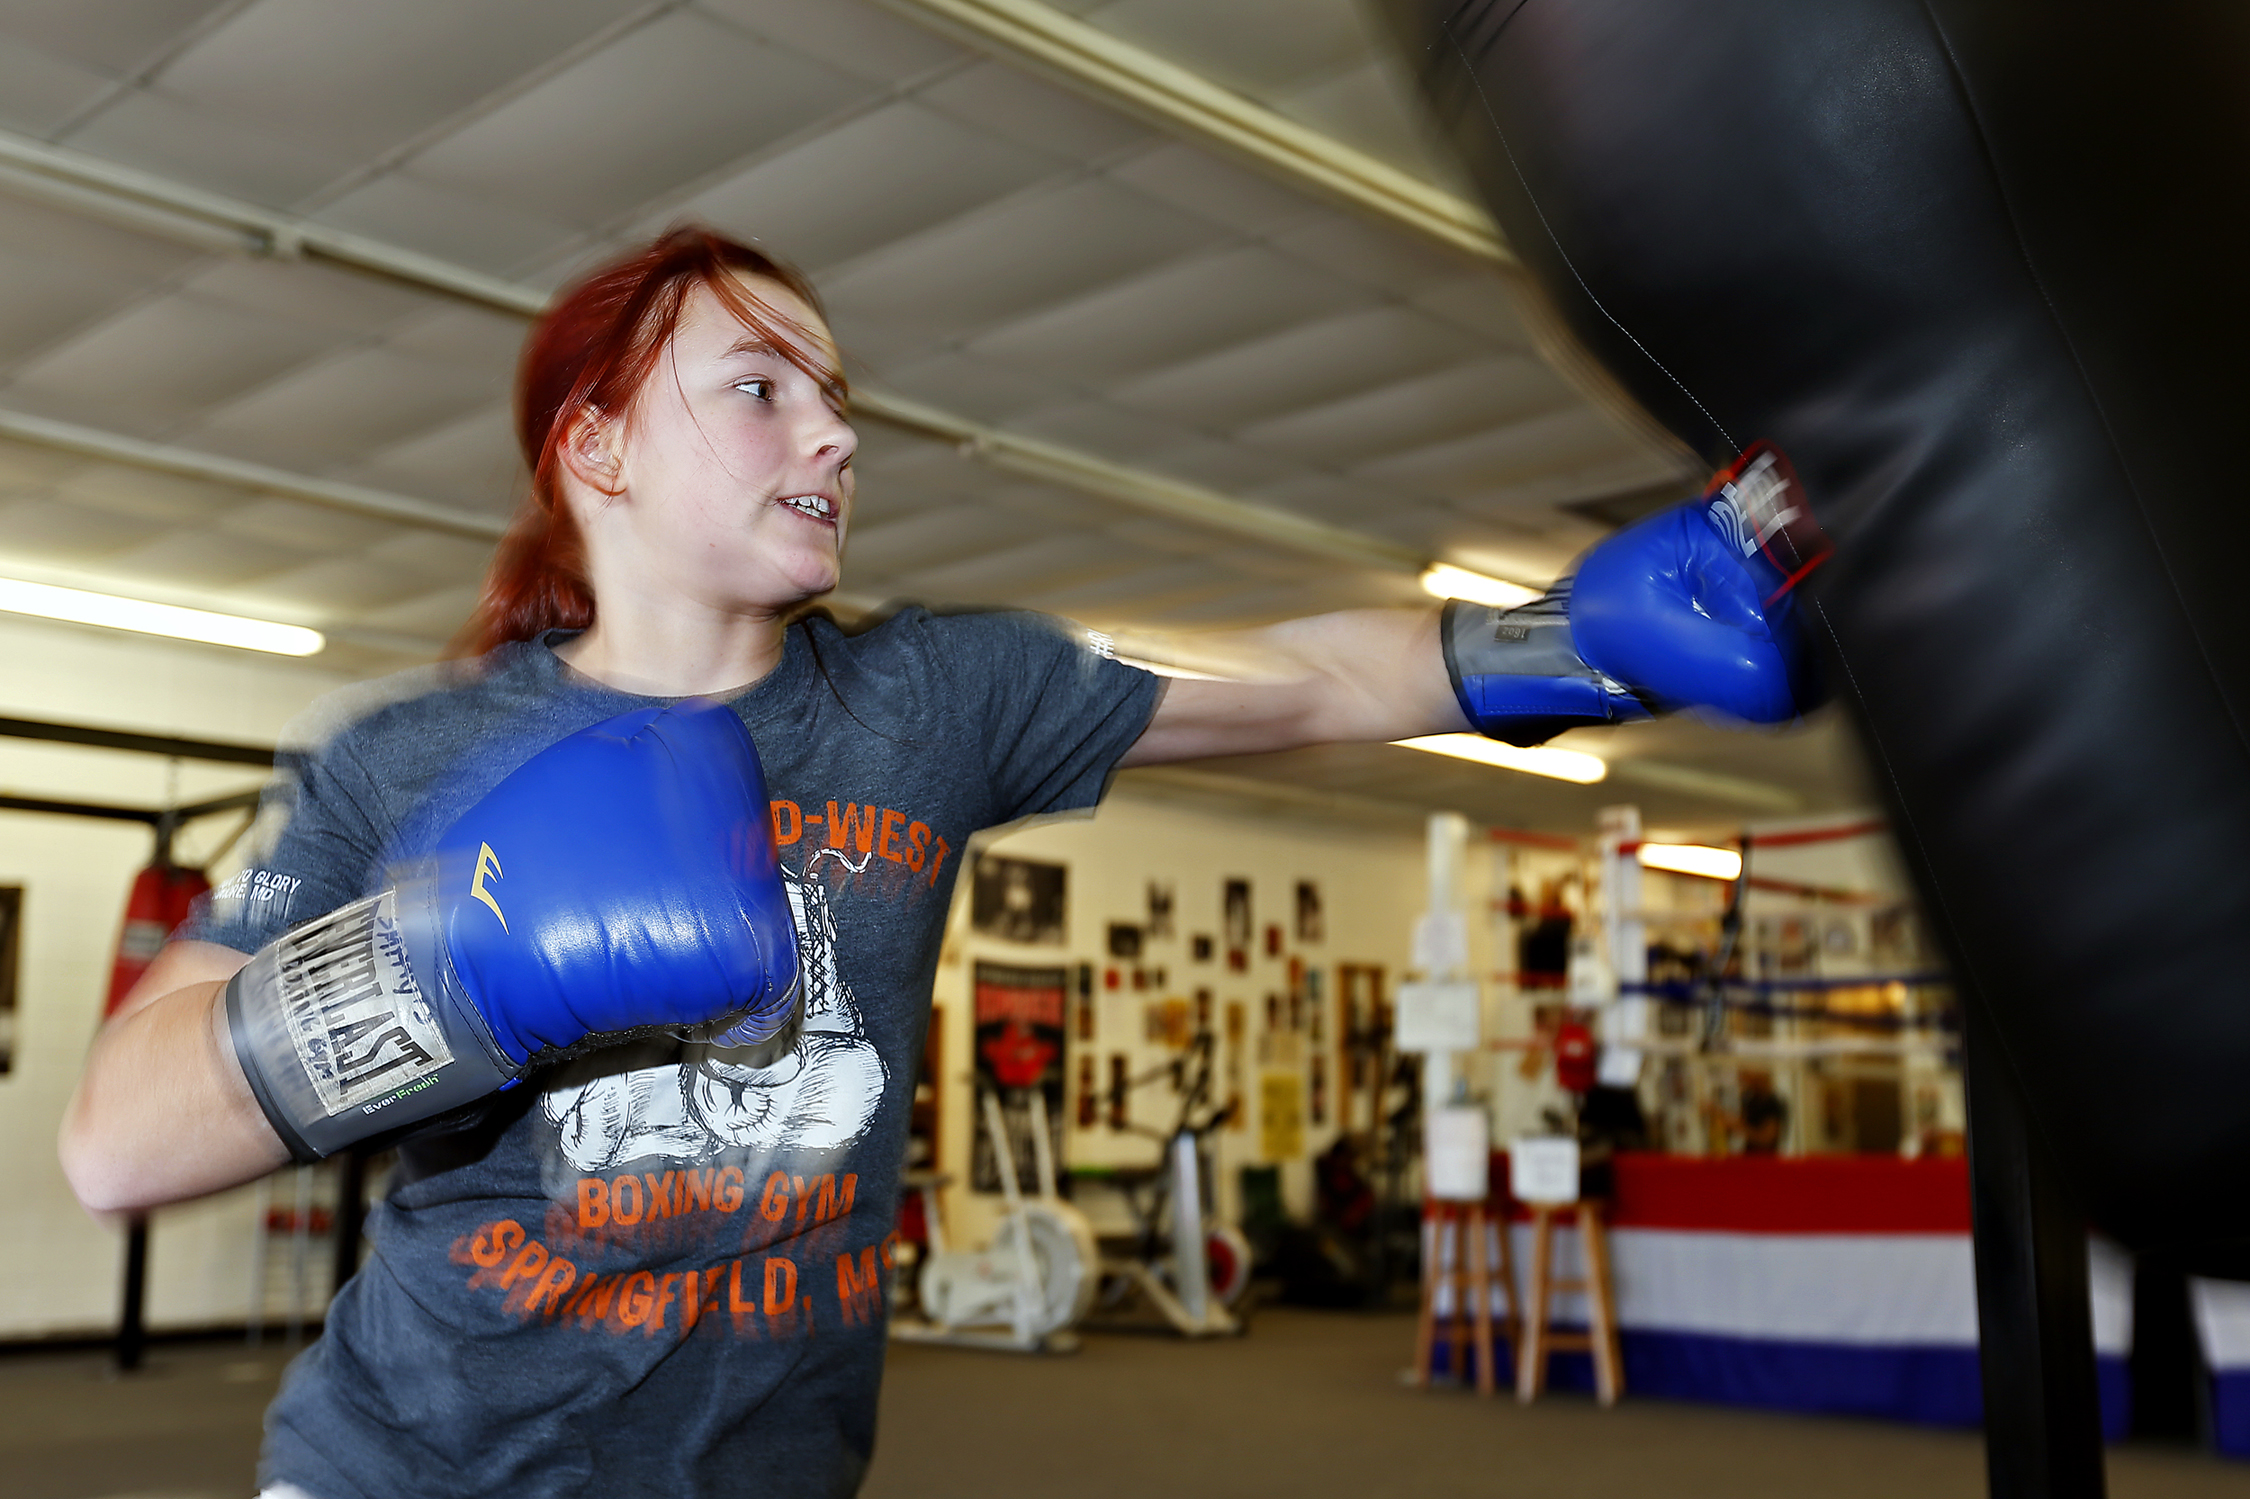 Shilyn Bradt, a 13-year-old who survived a severe gastrointestinal disease and multiple respiratory arrests at just weeks old, trains by boxing against a punching bag at Smitty's Midwest Boxing Gym in Springfield, Mo. on Feb. 4, 2016.Bradt was born with pyloric stenosis, a disease normally found in male babies over 2 weeks old. It occurs when the muscle that controls flow of food from the stomach to the small intestine is enlarged, blocking food from reaching the intestine. It causes severe and constant vomiting, which can lead to dehydration and weight loss.